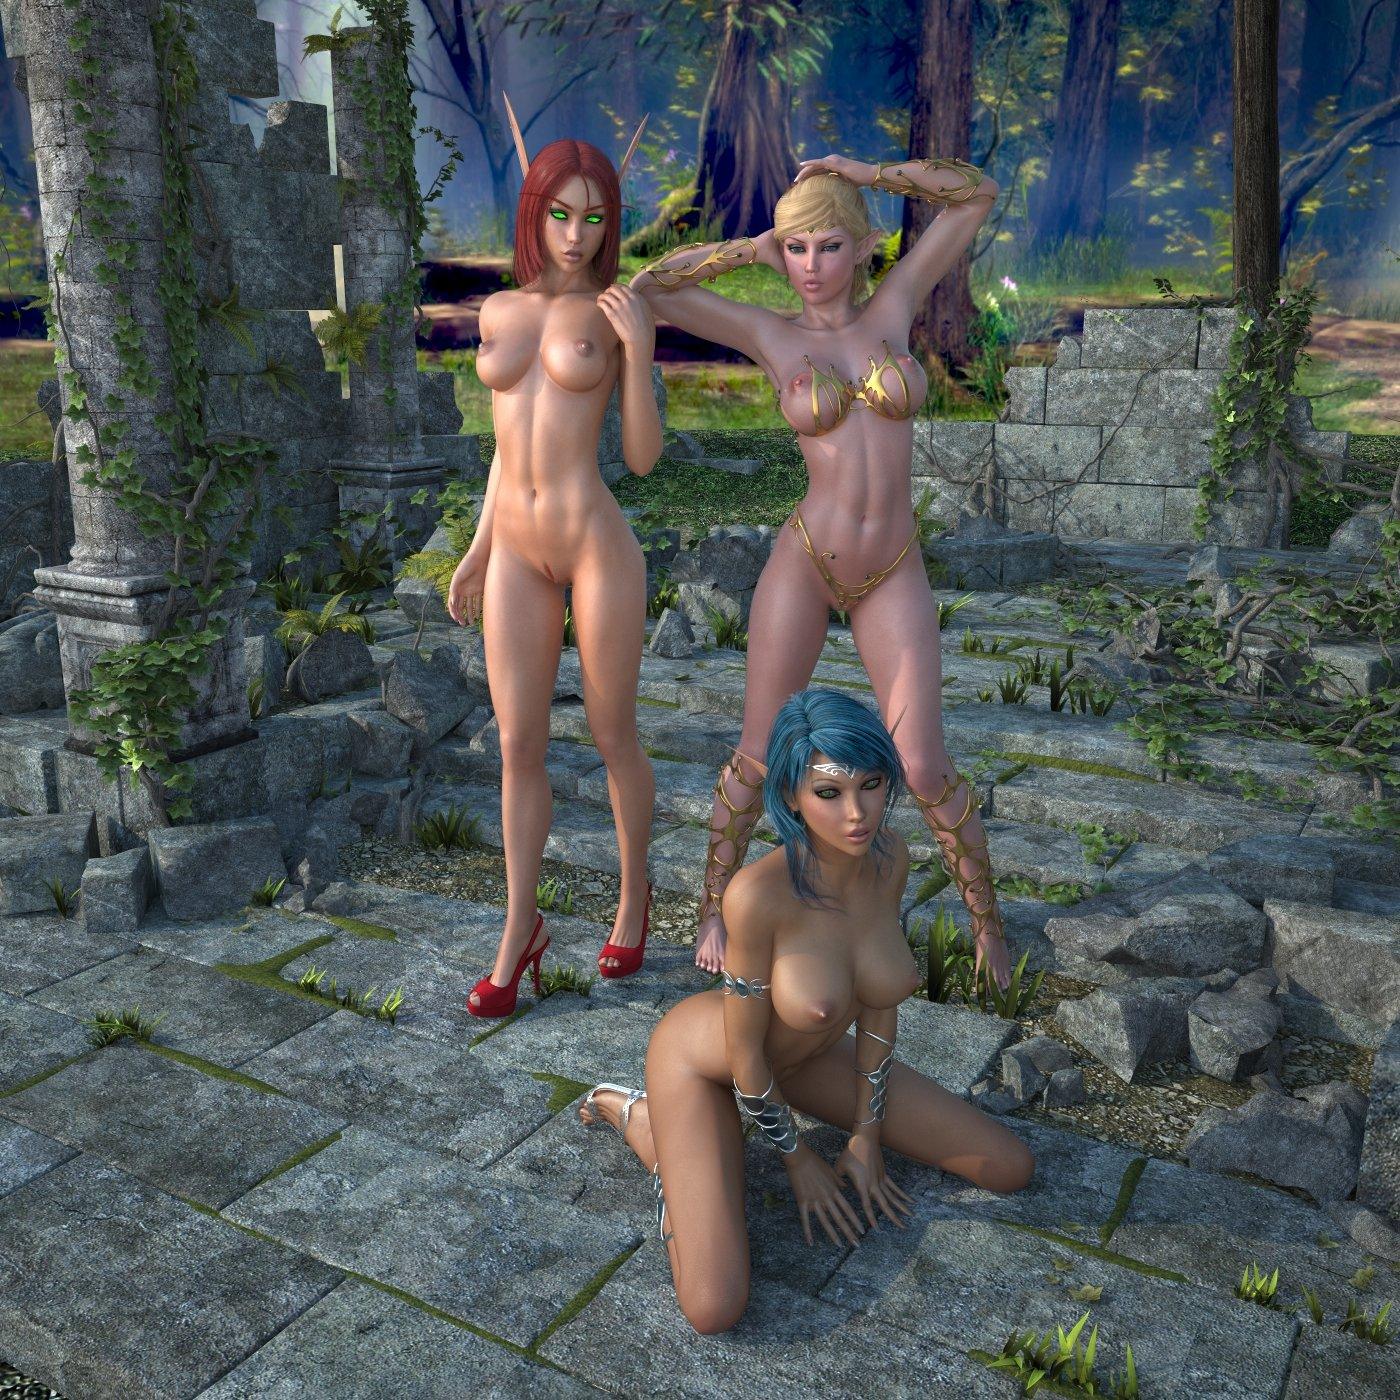 Cartoon 3d nude elf hentay scene